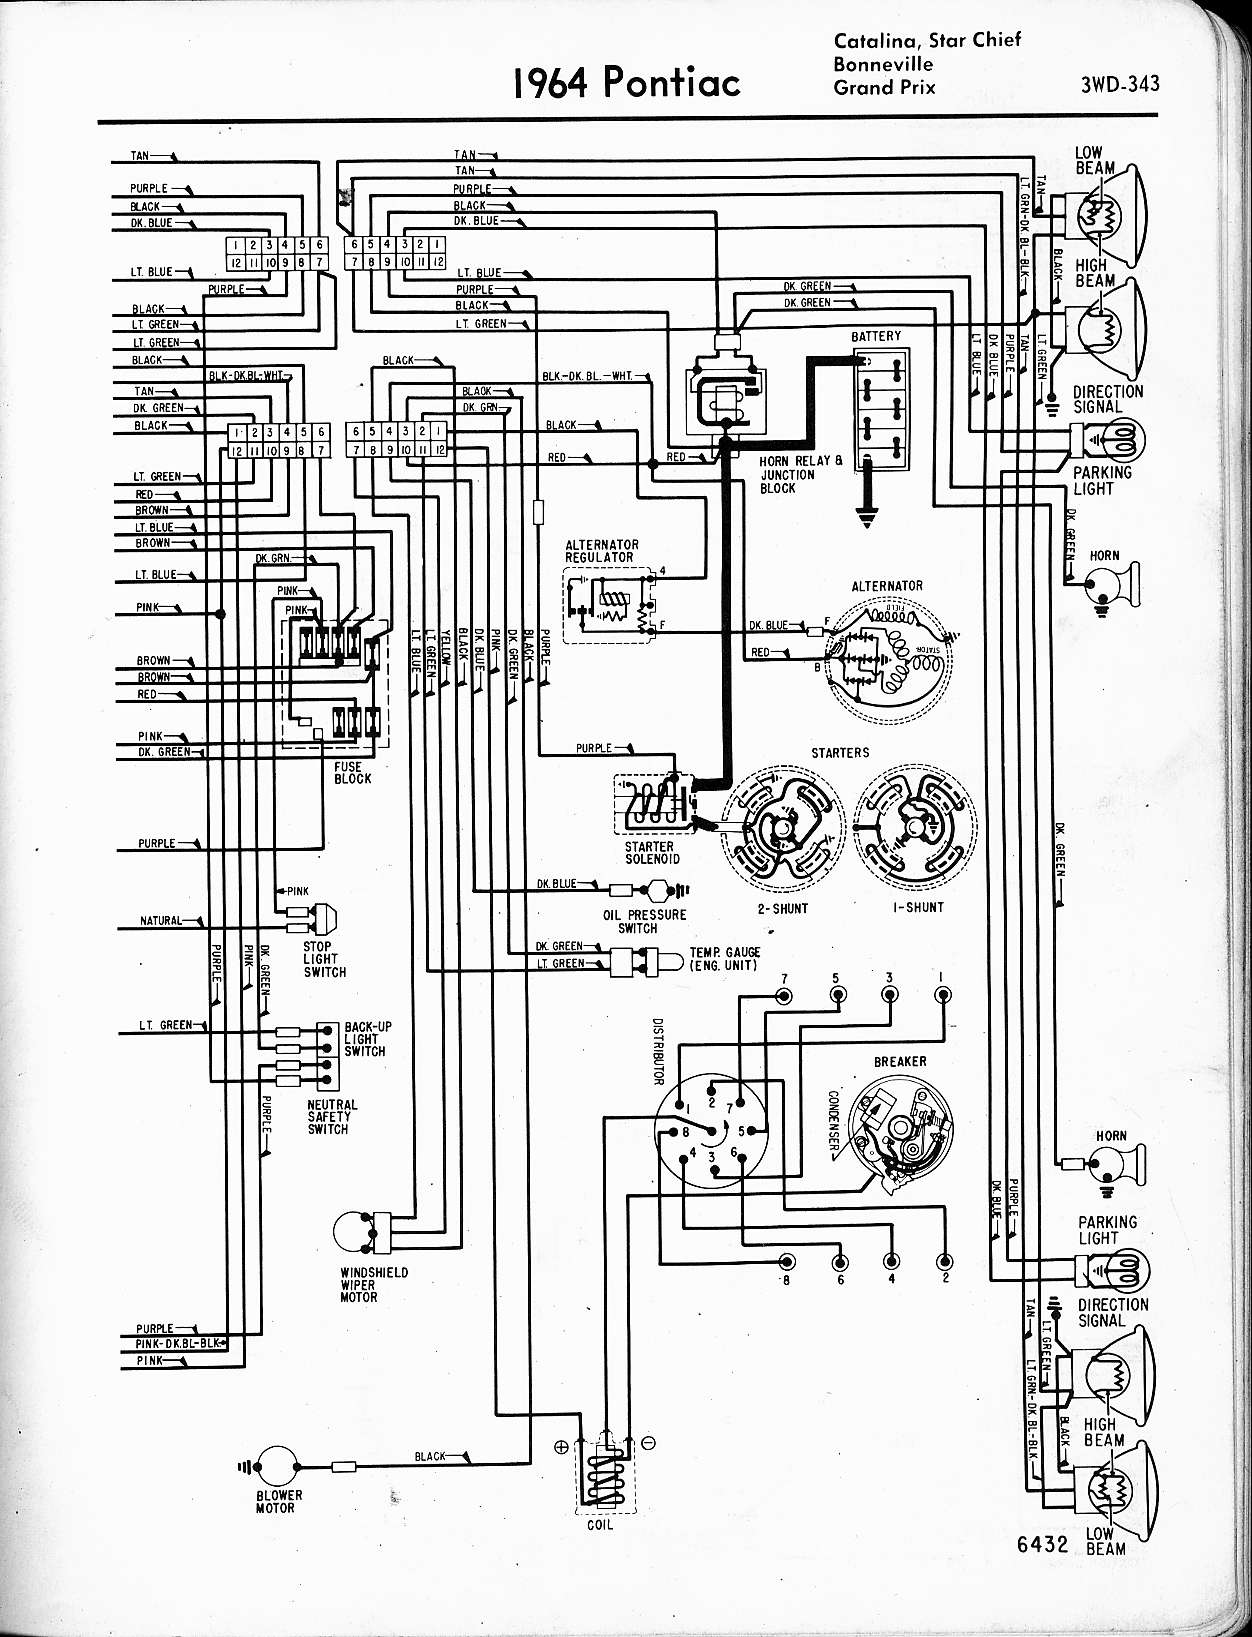 Wiring Diagram 1964 Pontiac Gto 1967 Dash Free Download Wallace Racing Diagrams1964 Catalina Star Chief Bonneville Grand Prix Right Page